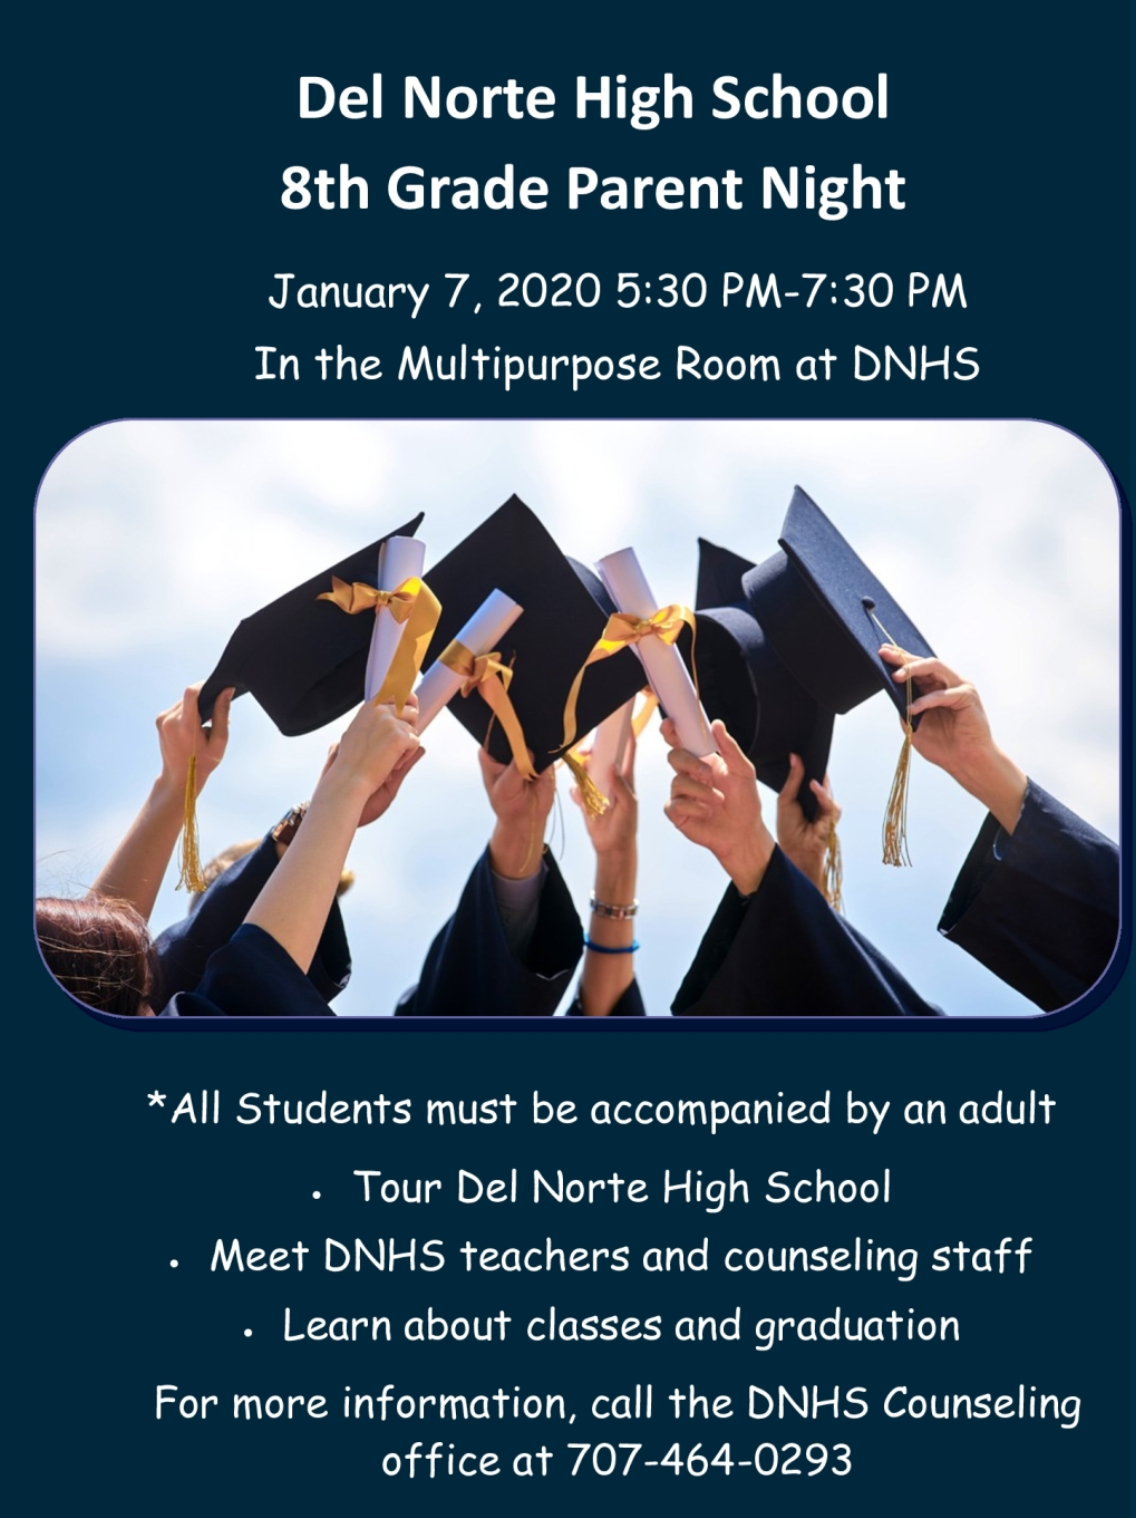 Del Norte High School 8th Grade Parent Night